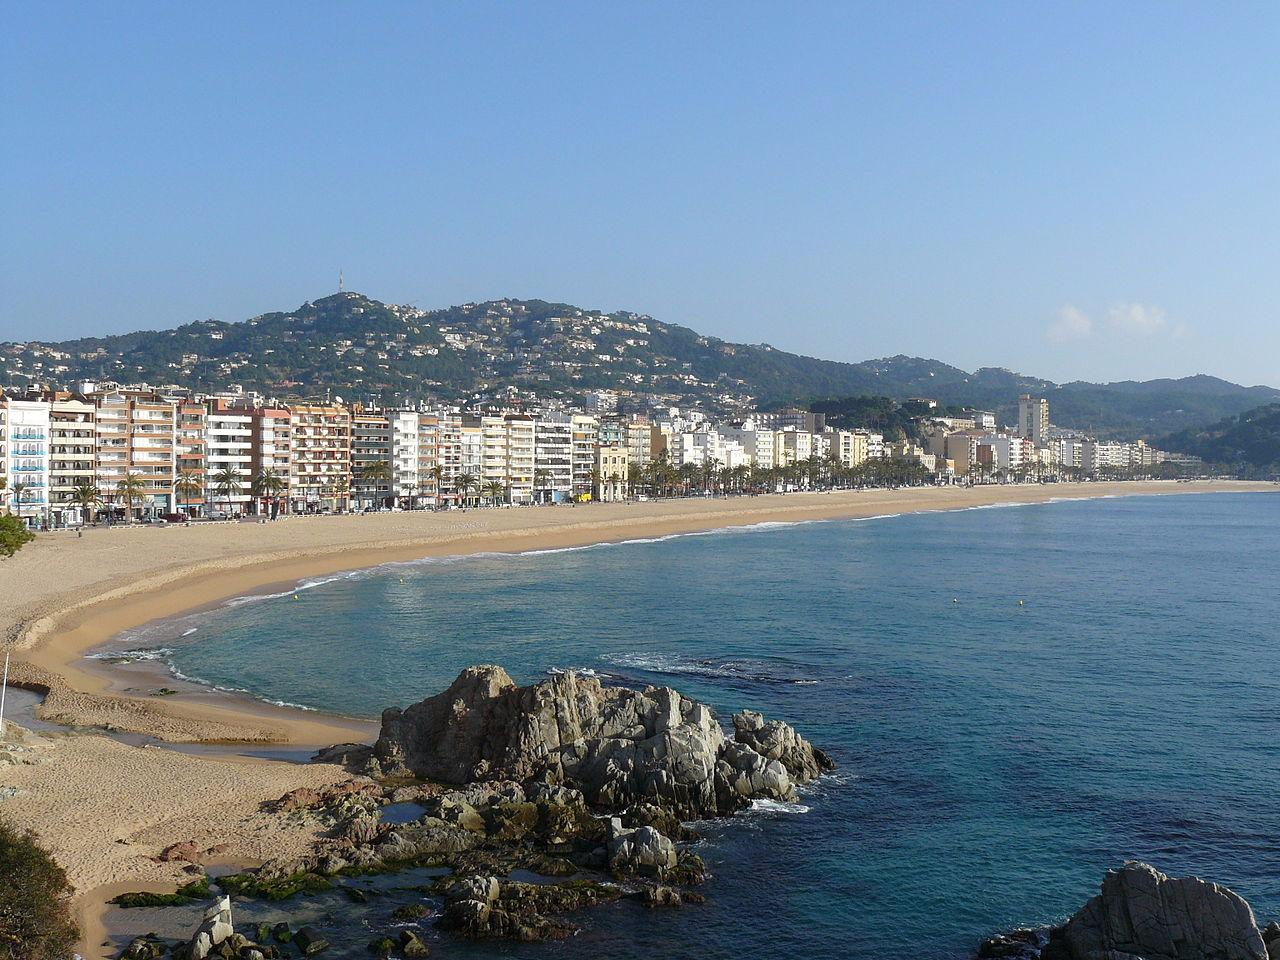 lloret de mar now